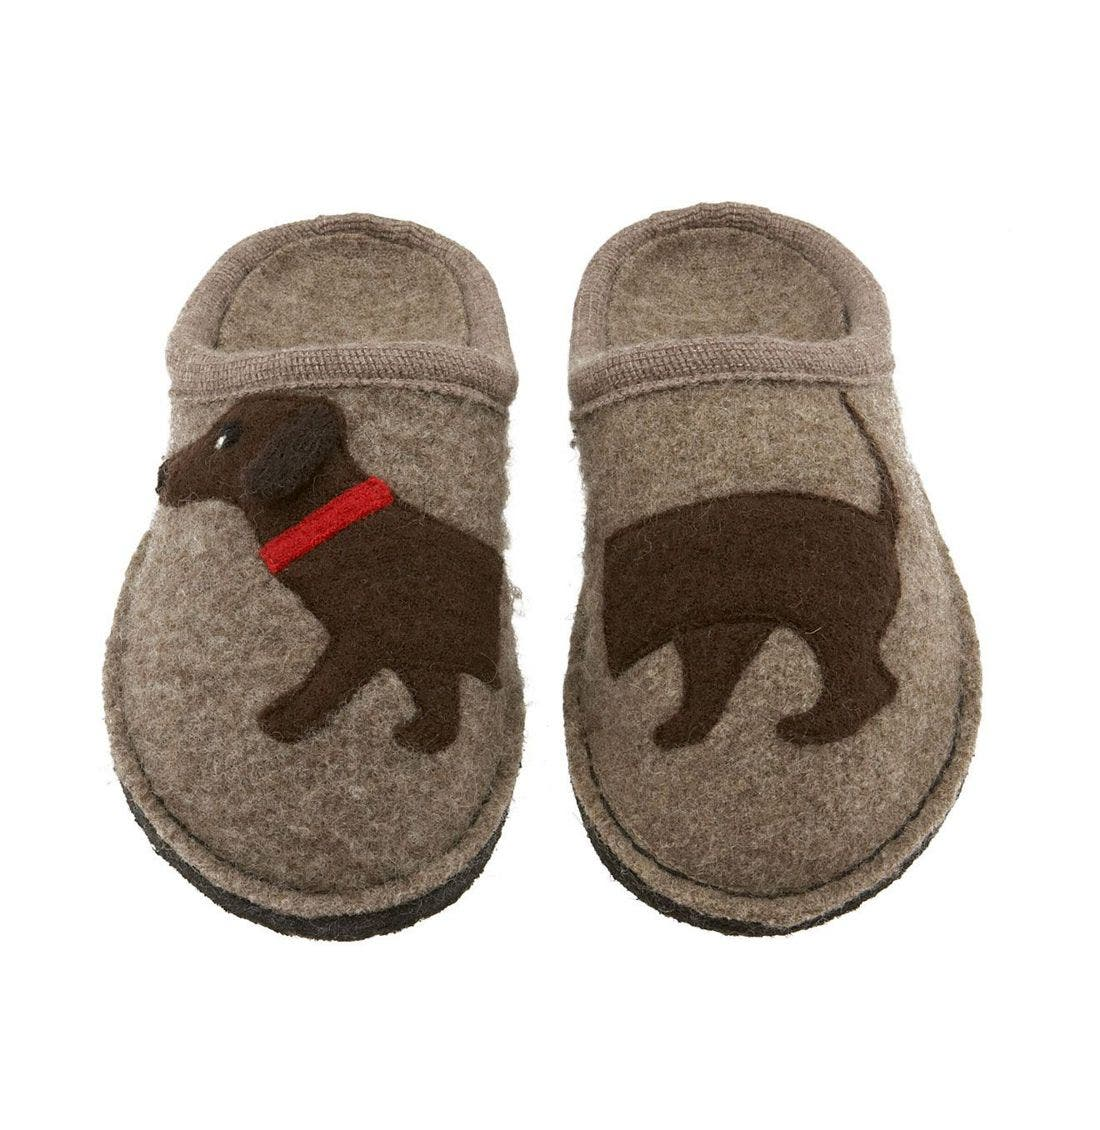 'Doggy' Slipper,                             Alternate thumbnail 11, color,                             EARTH